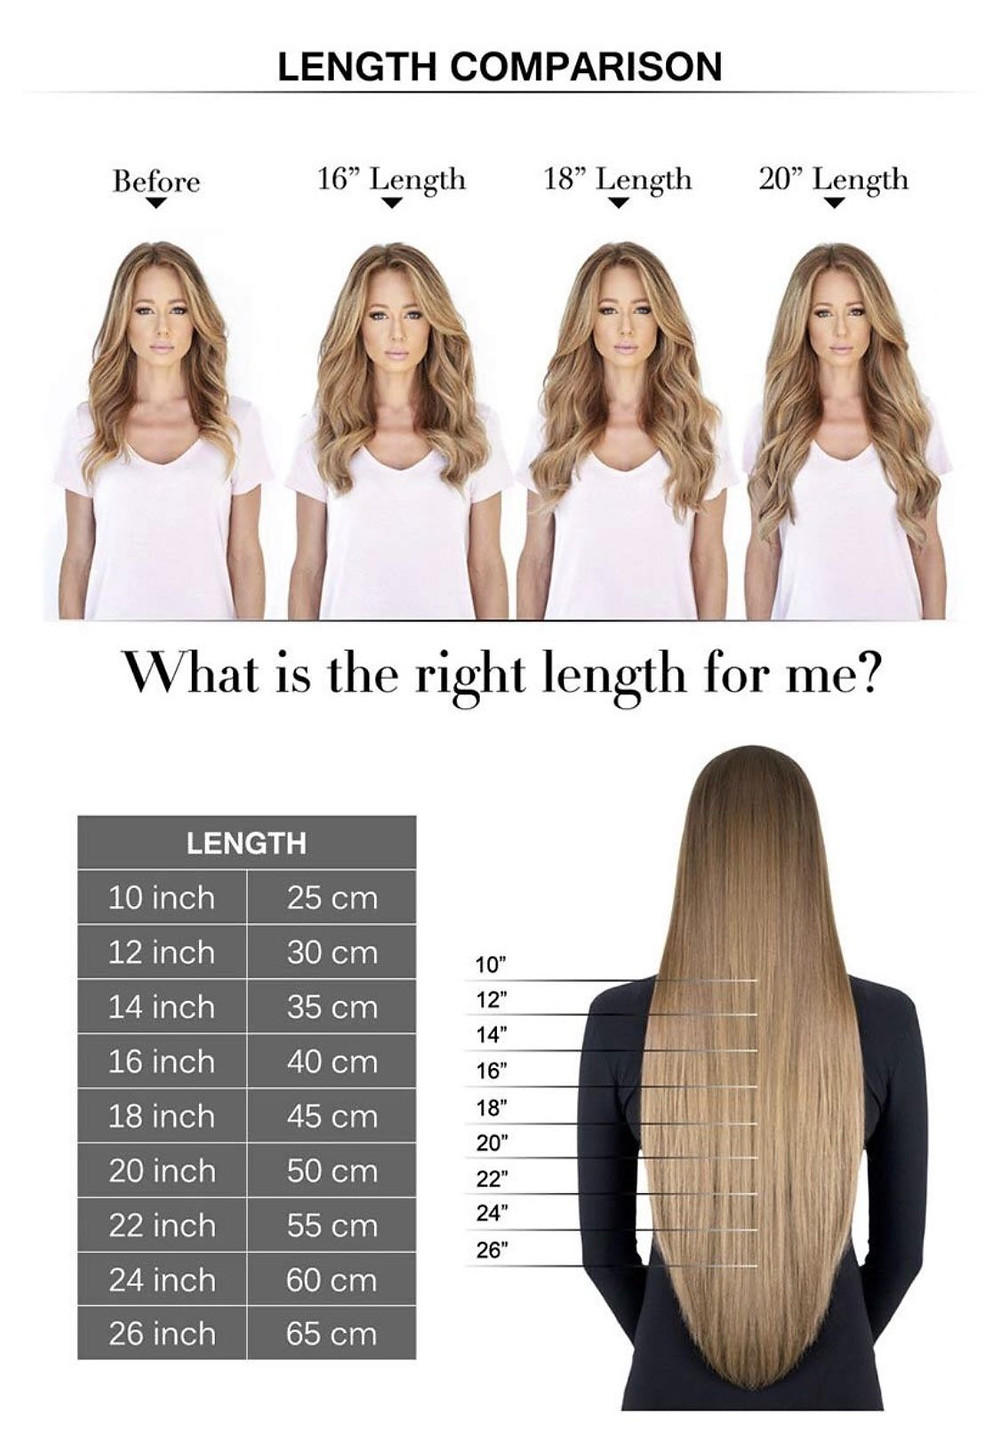 A length comparison chart for hair extensions varying from 16 - 20 inches in length